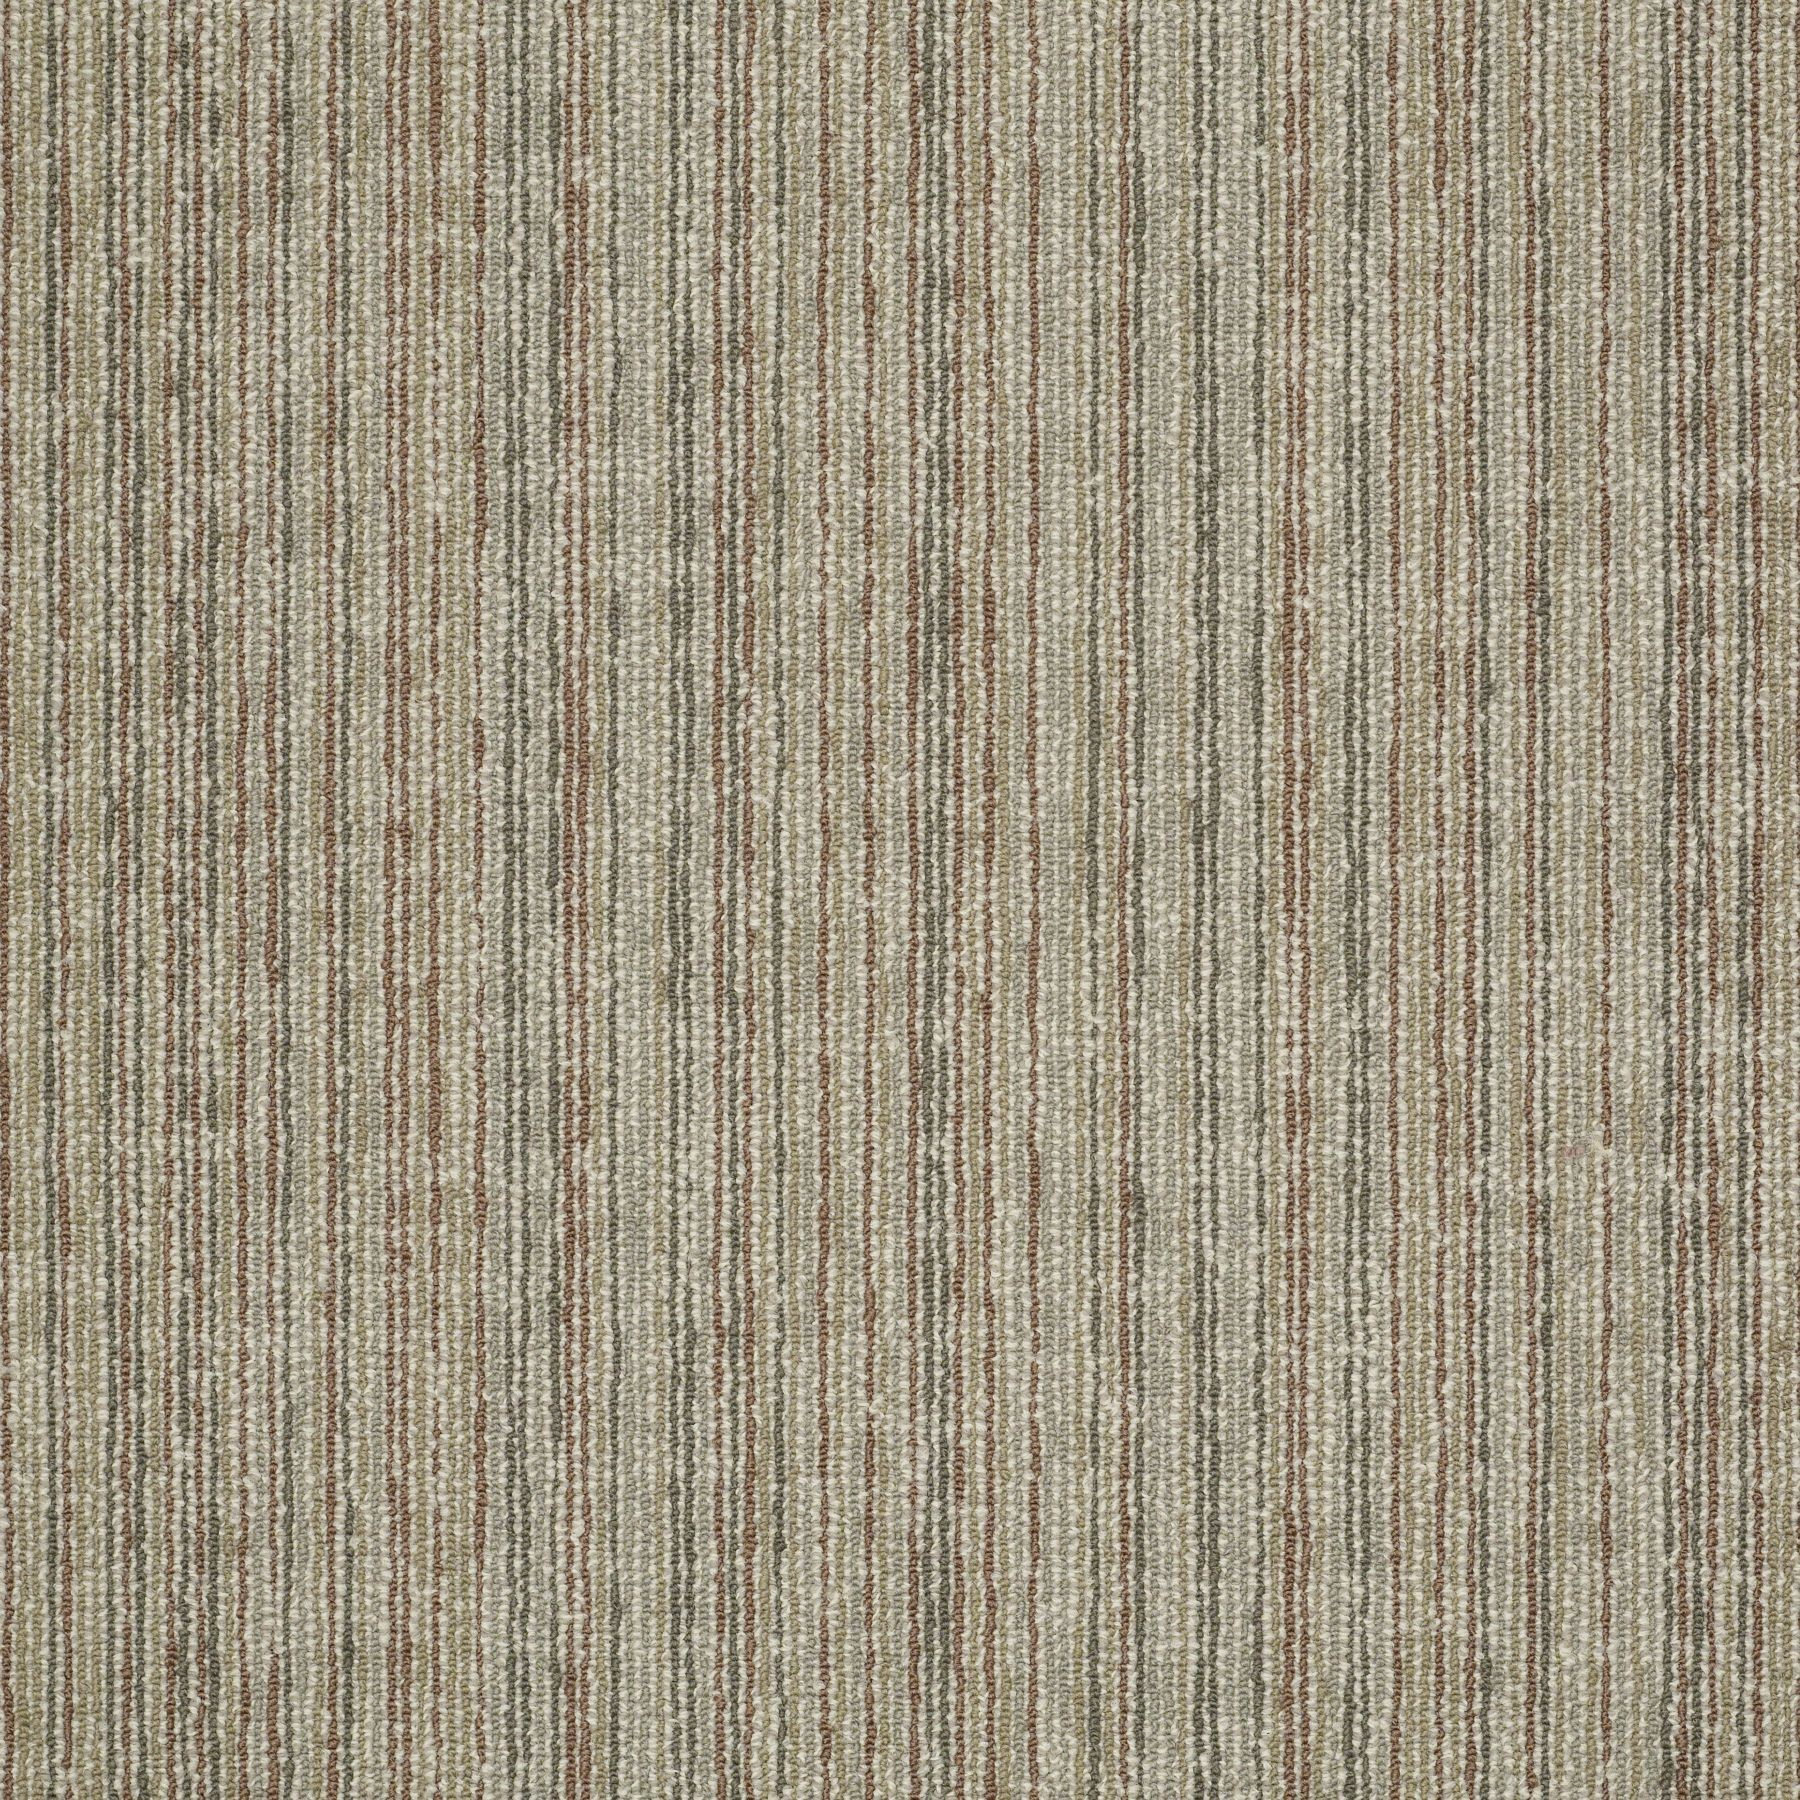 Mystify Tile 54589 Color 00100 Carpet Tile